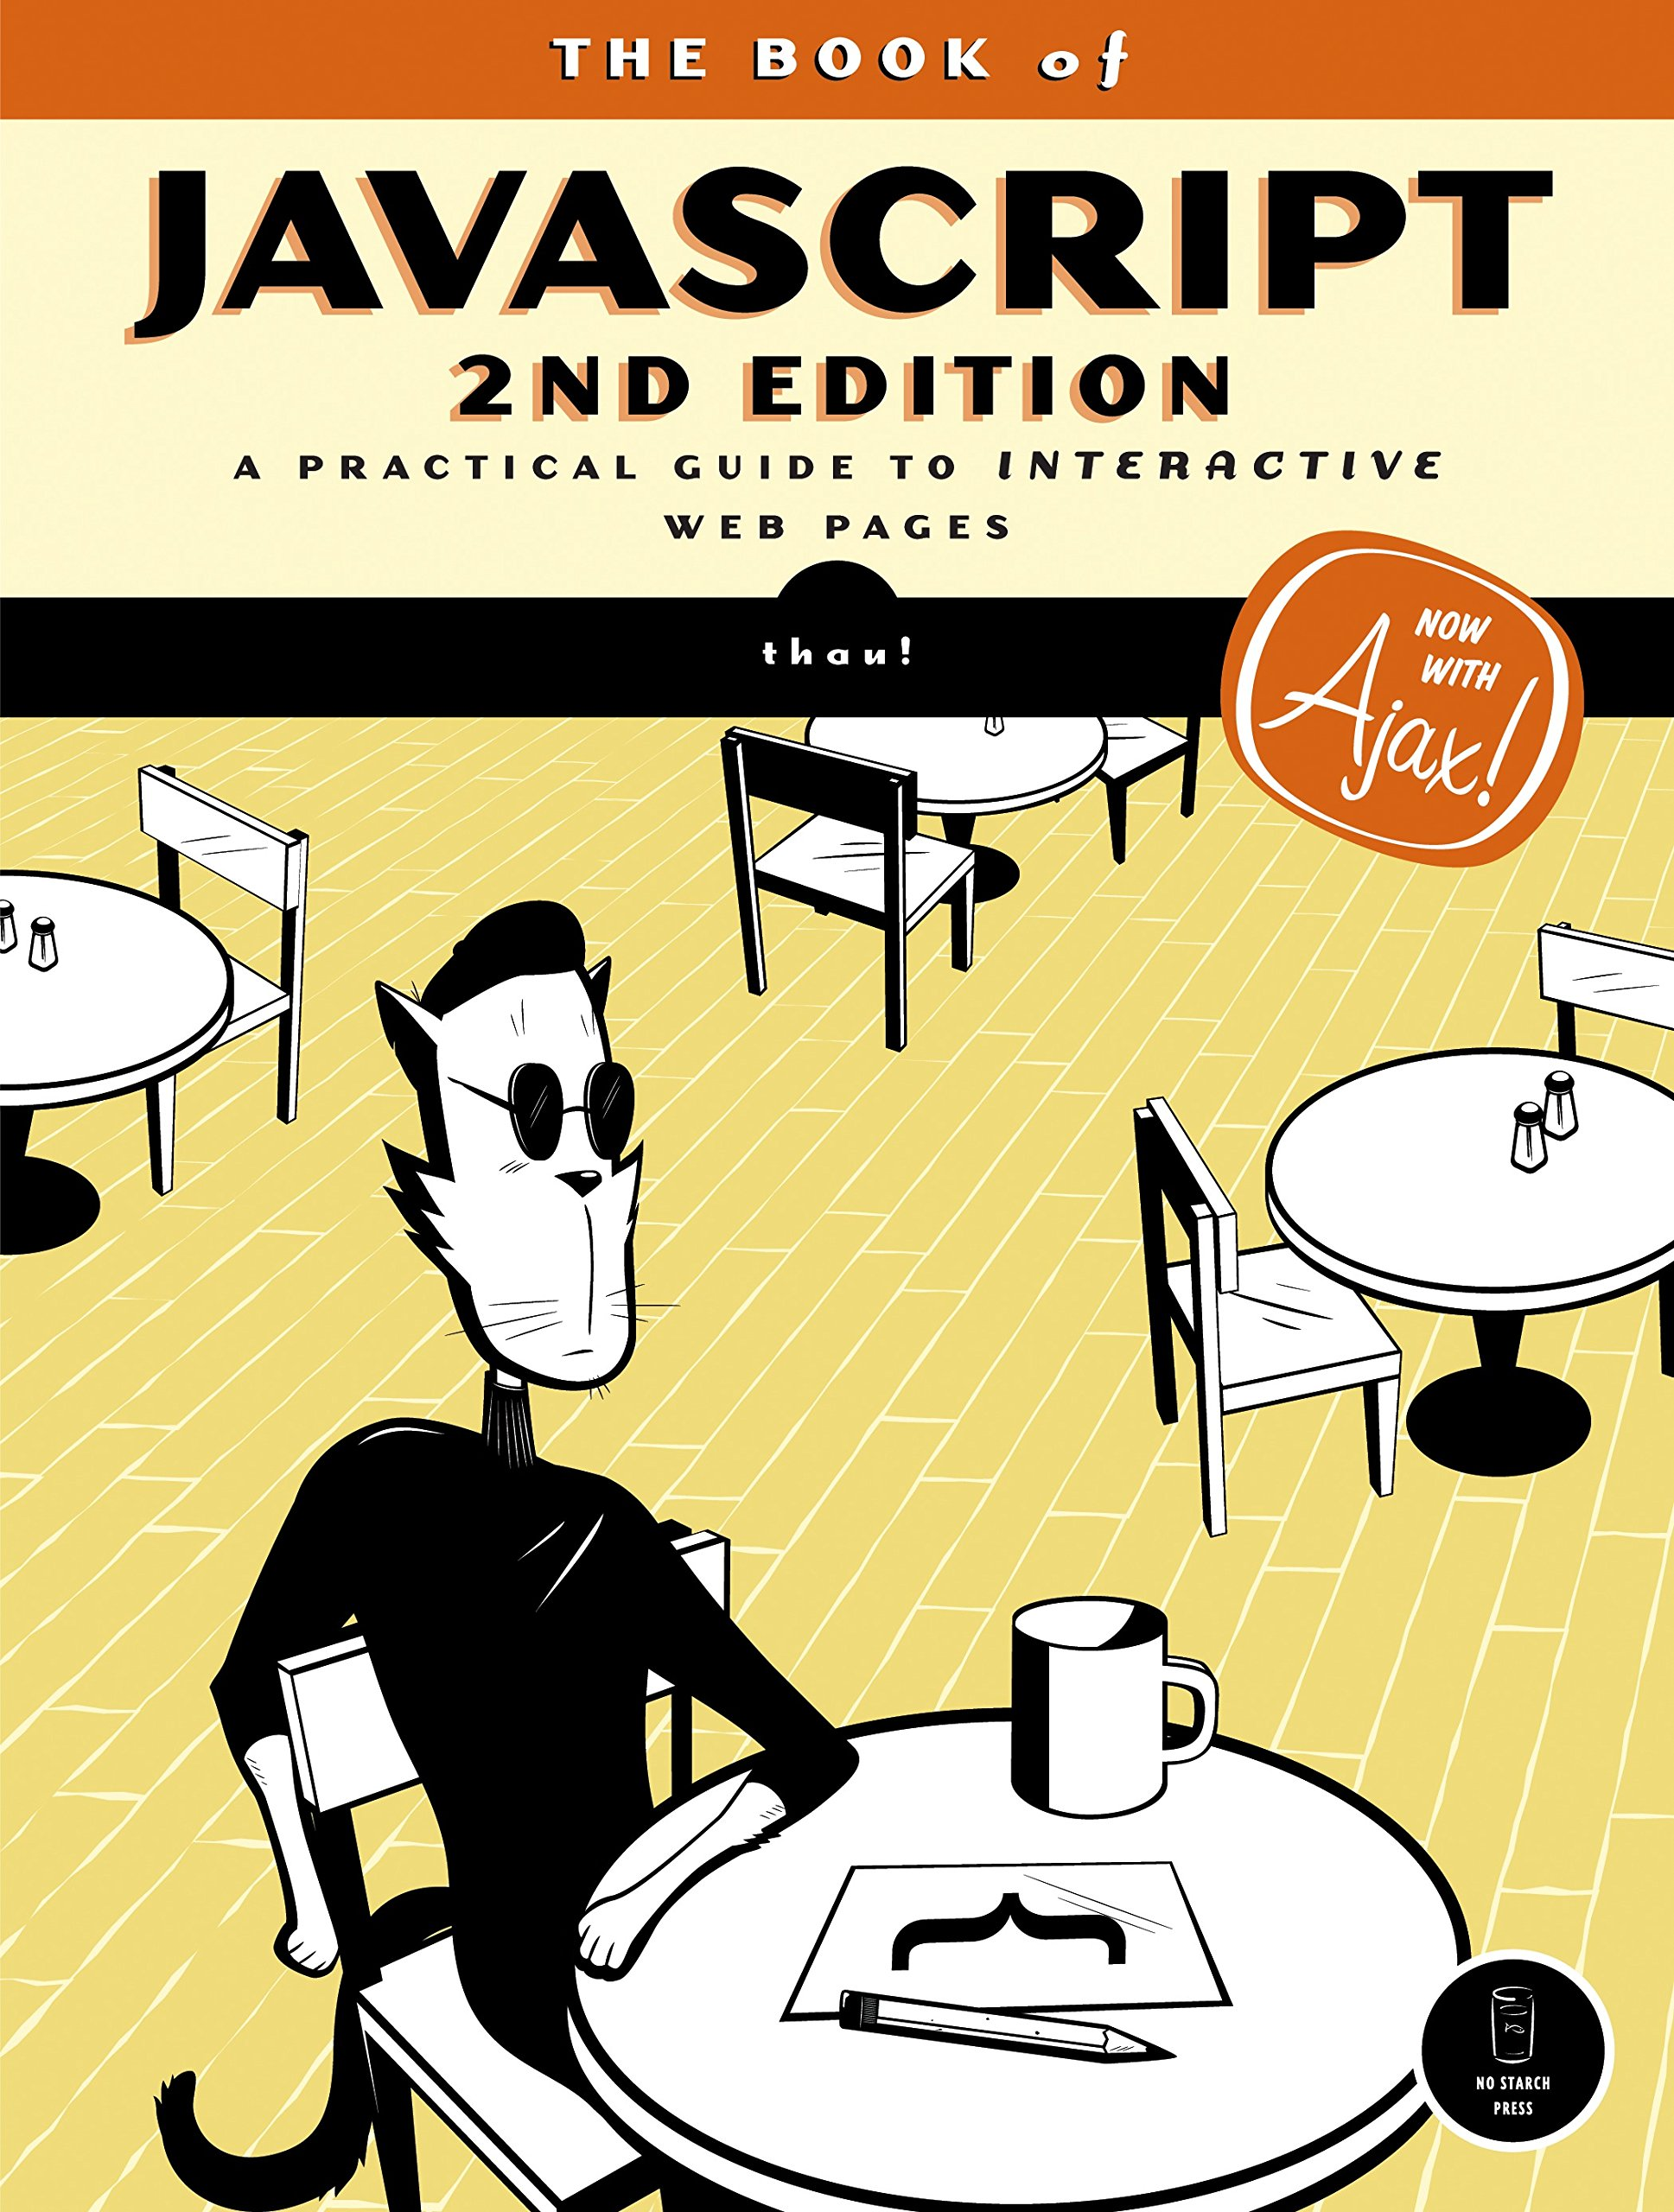 The Book of JavaScript, 2nd Edition: A Practical Guide to Interactive Web Pages